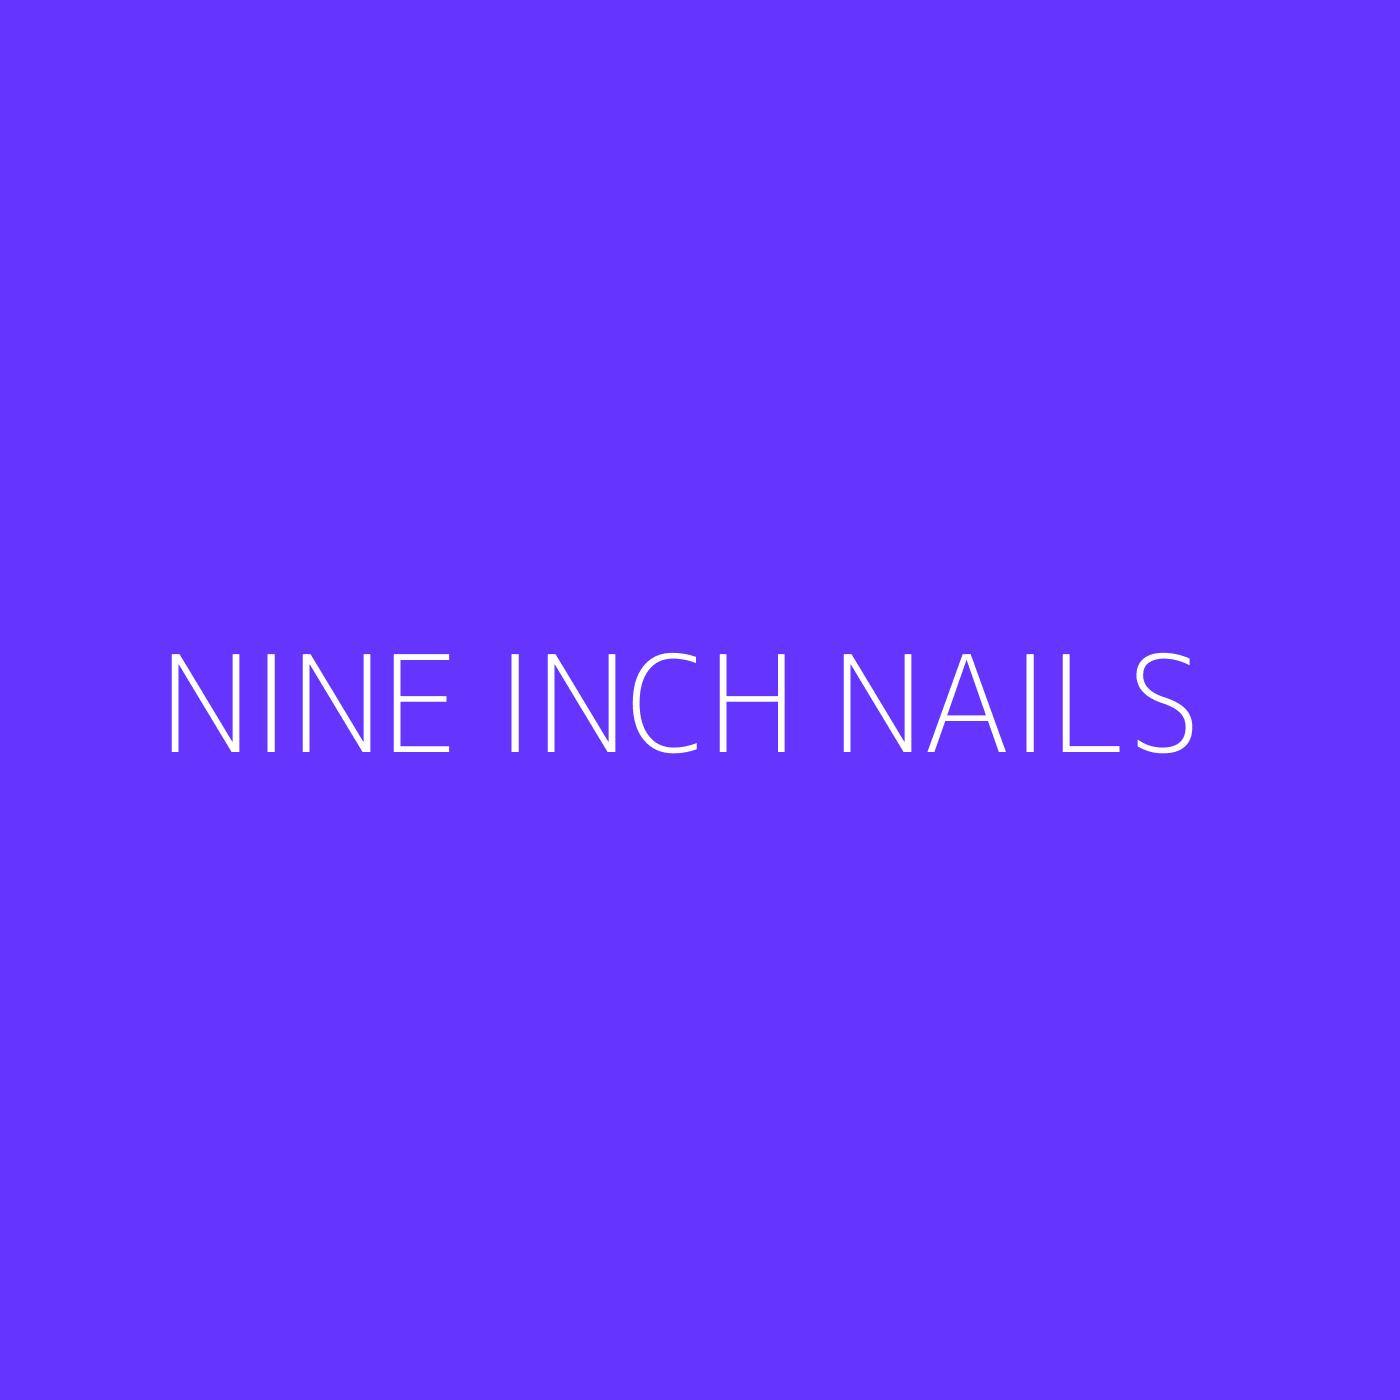 Nine Inch Nails Playlist Artwork